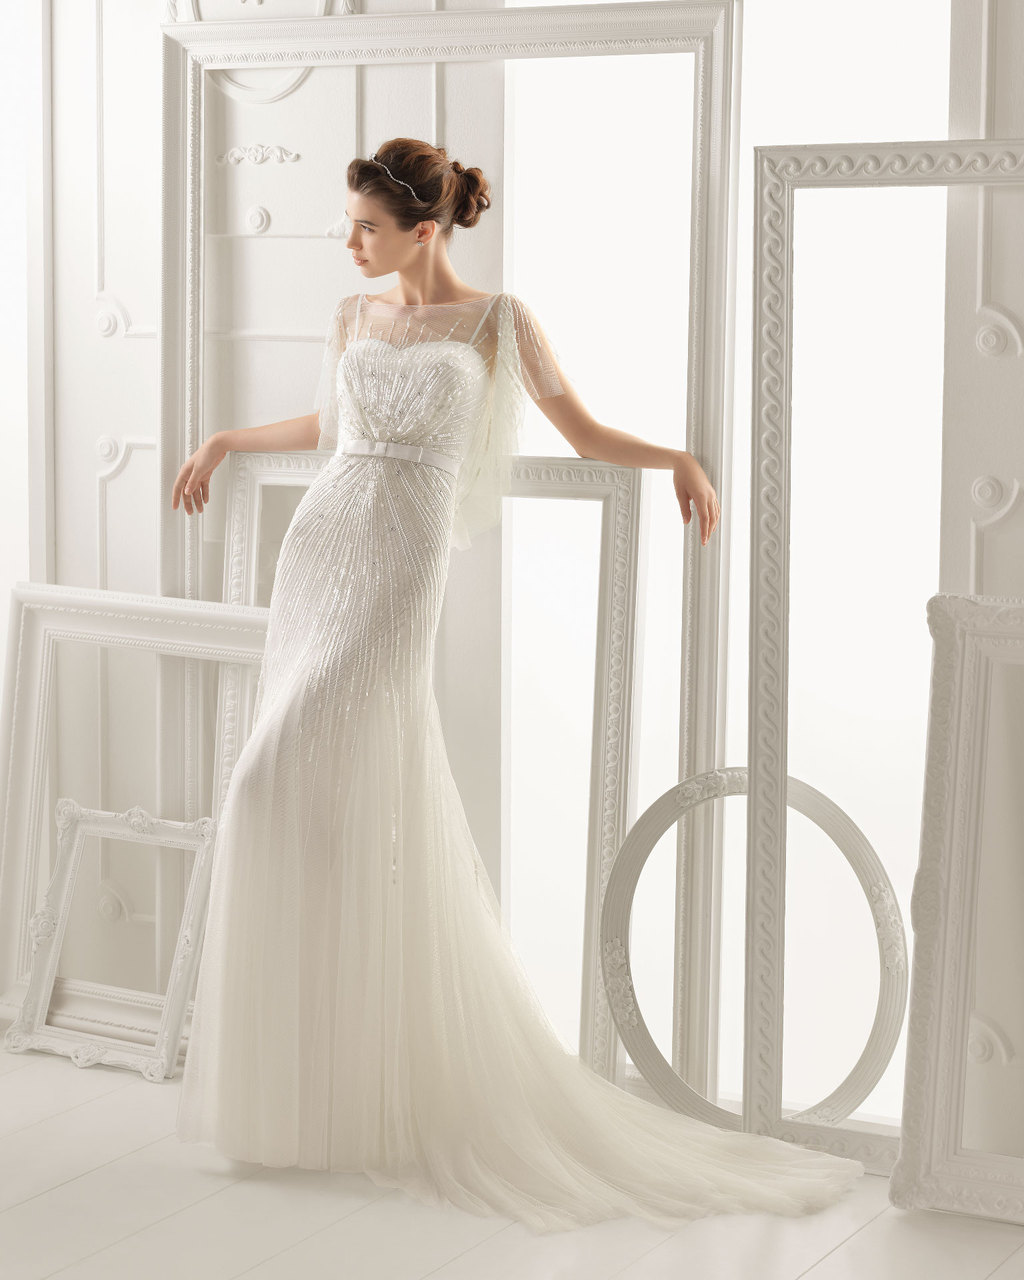 Aire-barcelona-wedding-dress-2014-bridal-oneida.full